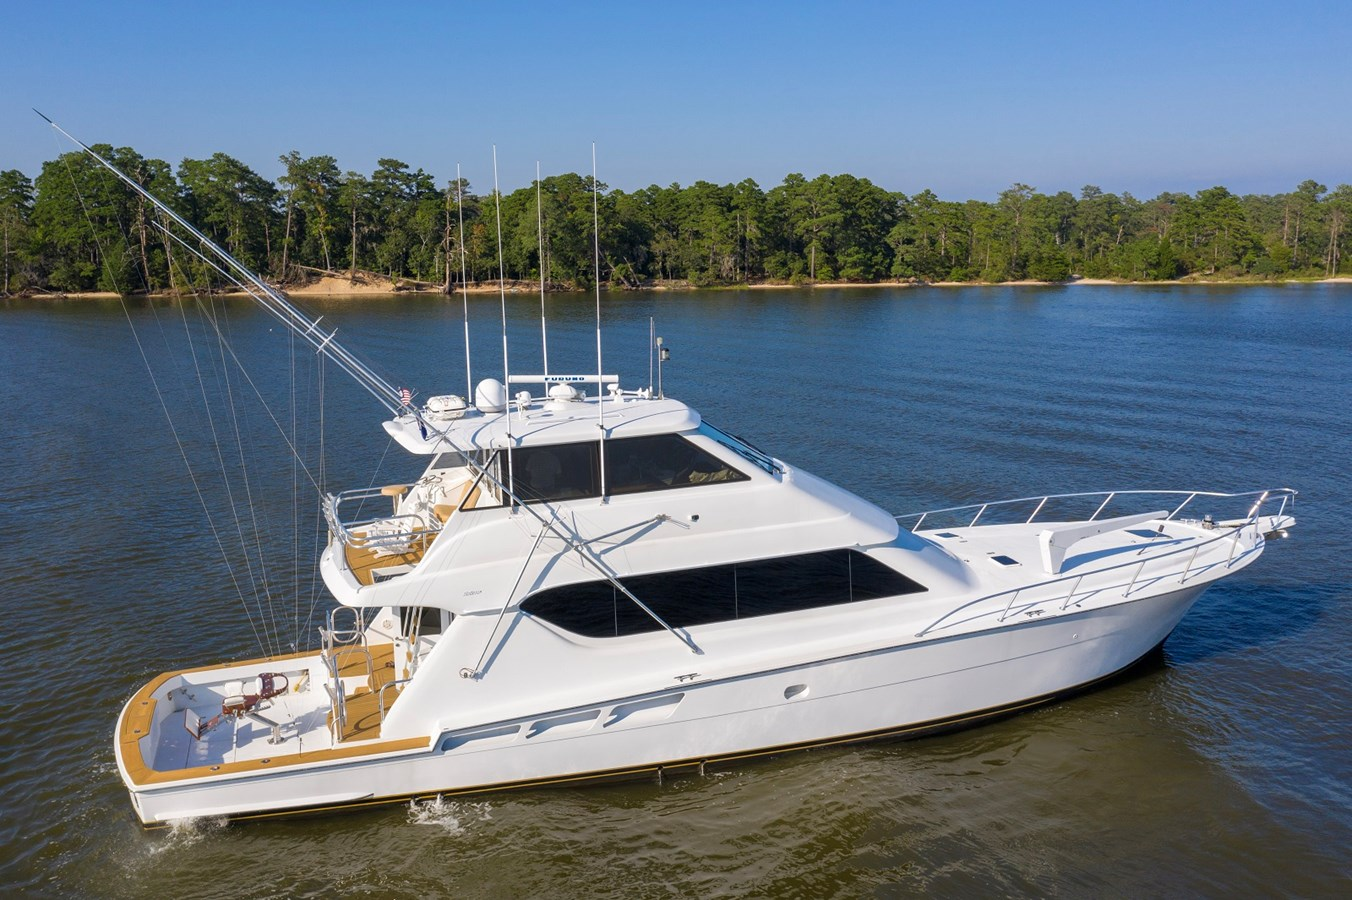 2003 70 Hatteras EB Convertible - 70 HATTERAS For Sale